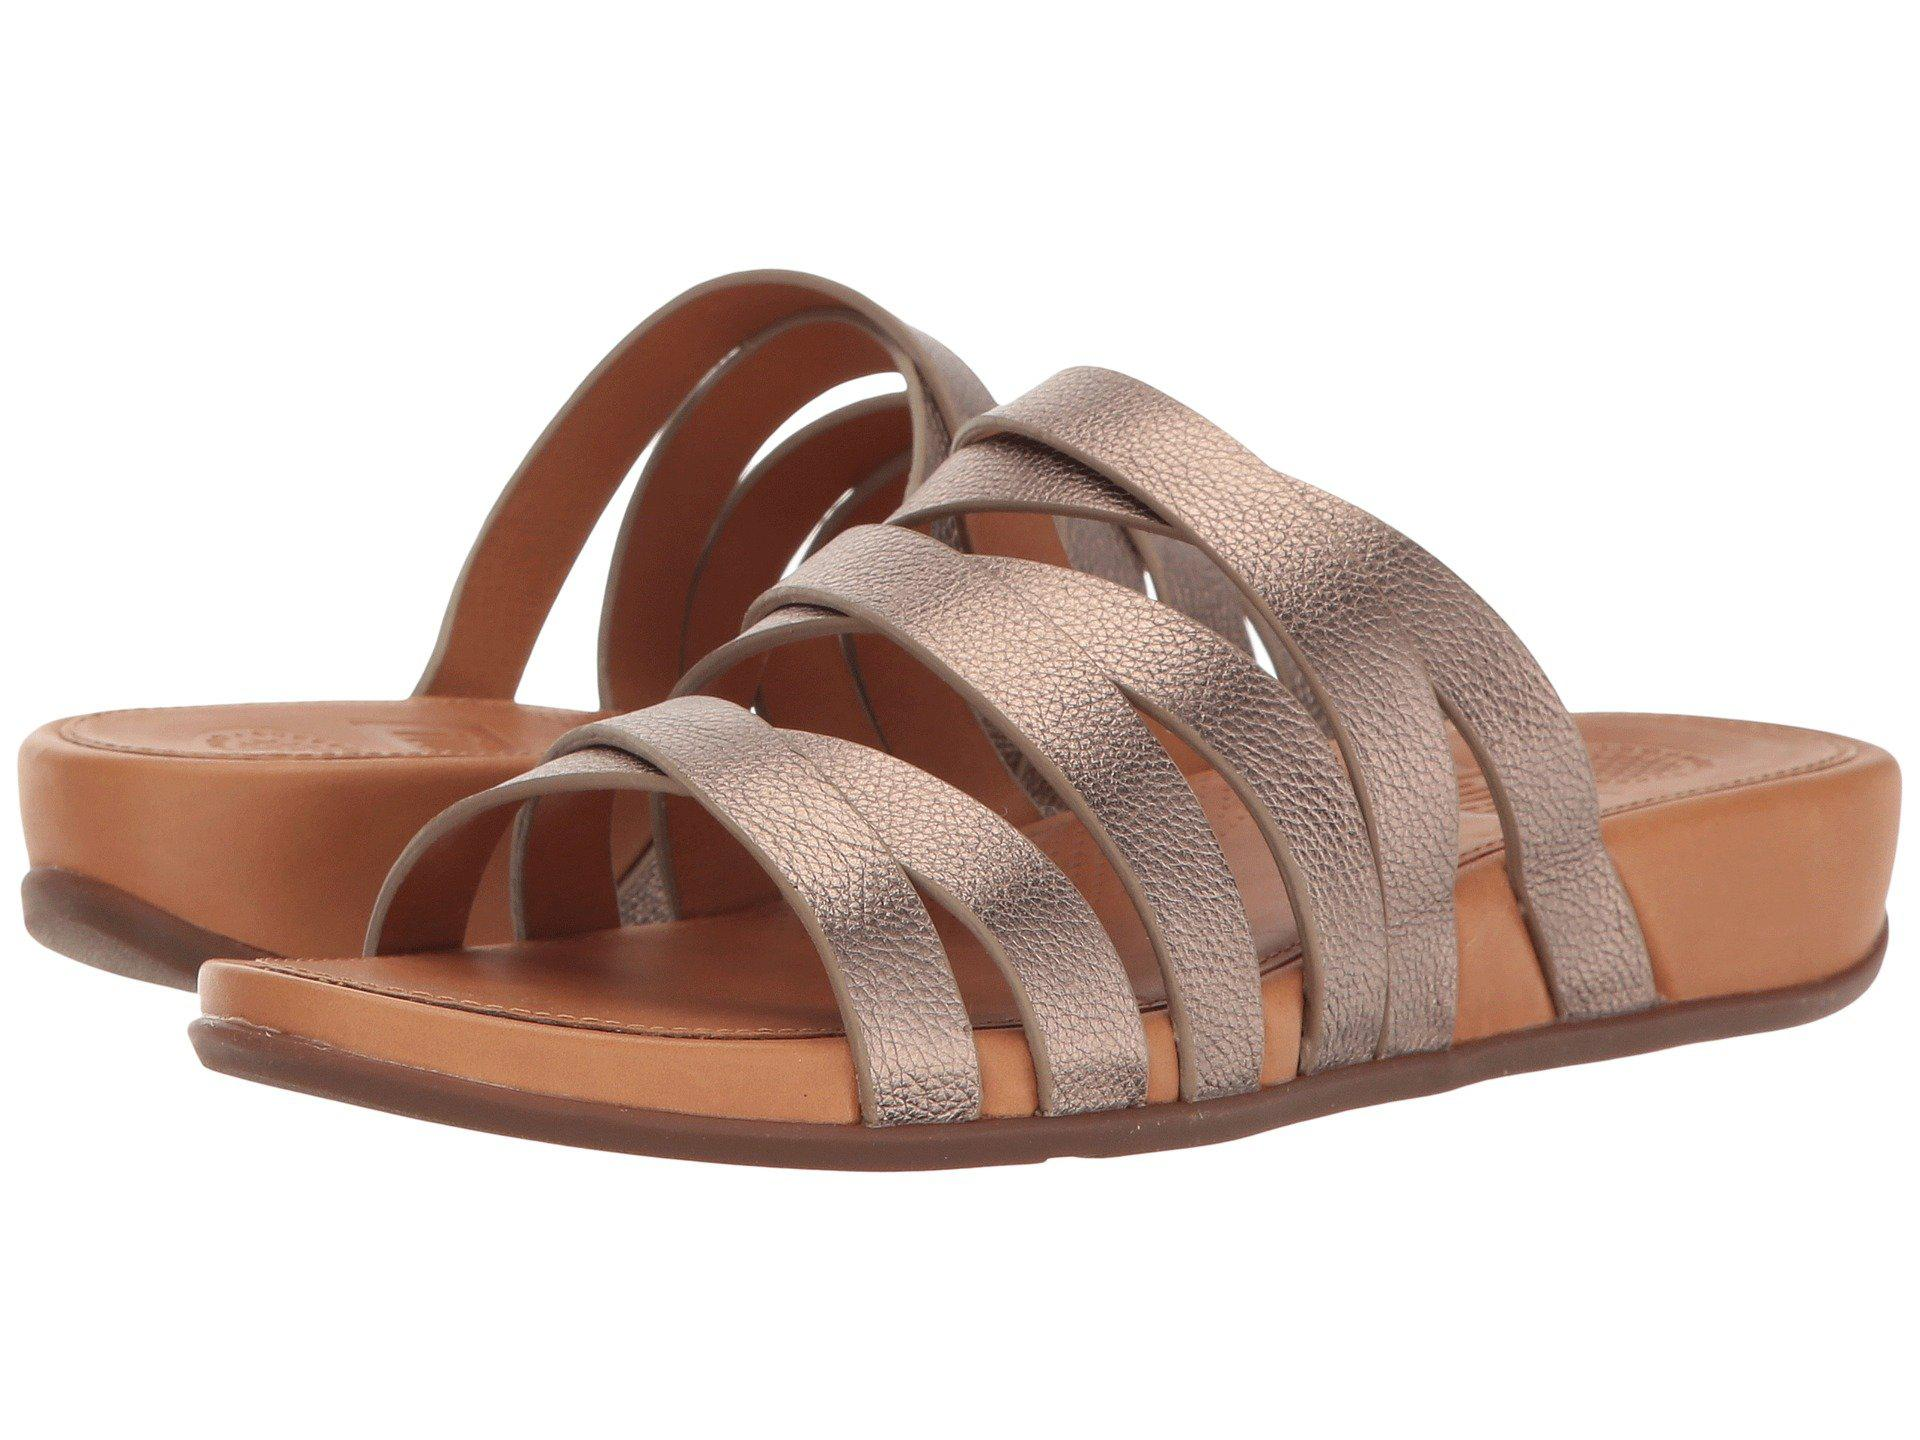 80f5eb0ec445 Lyst - Fitflop Lumy Leather Slide in Brown